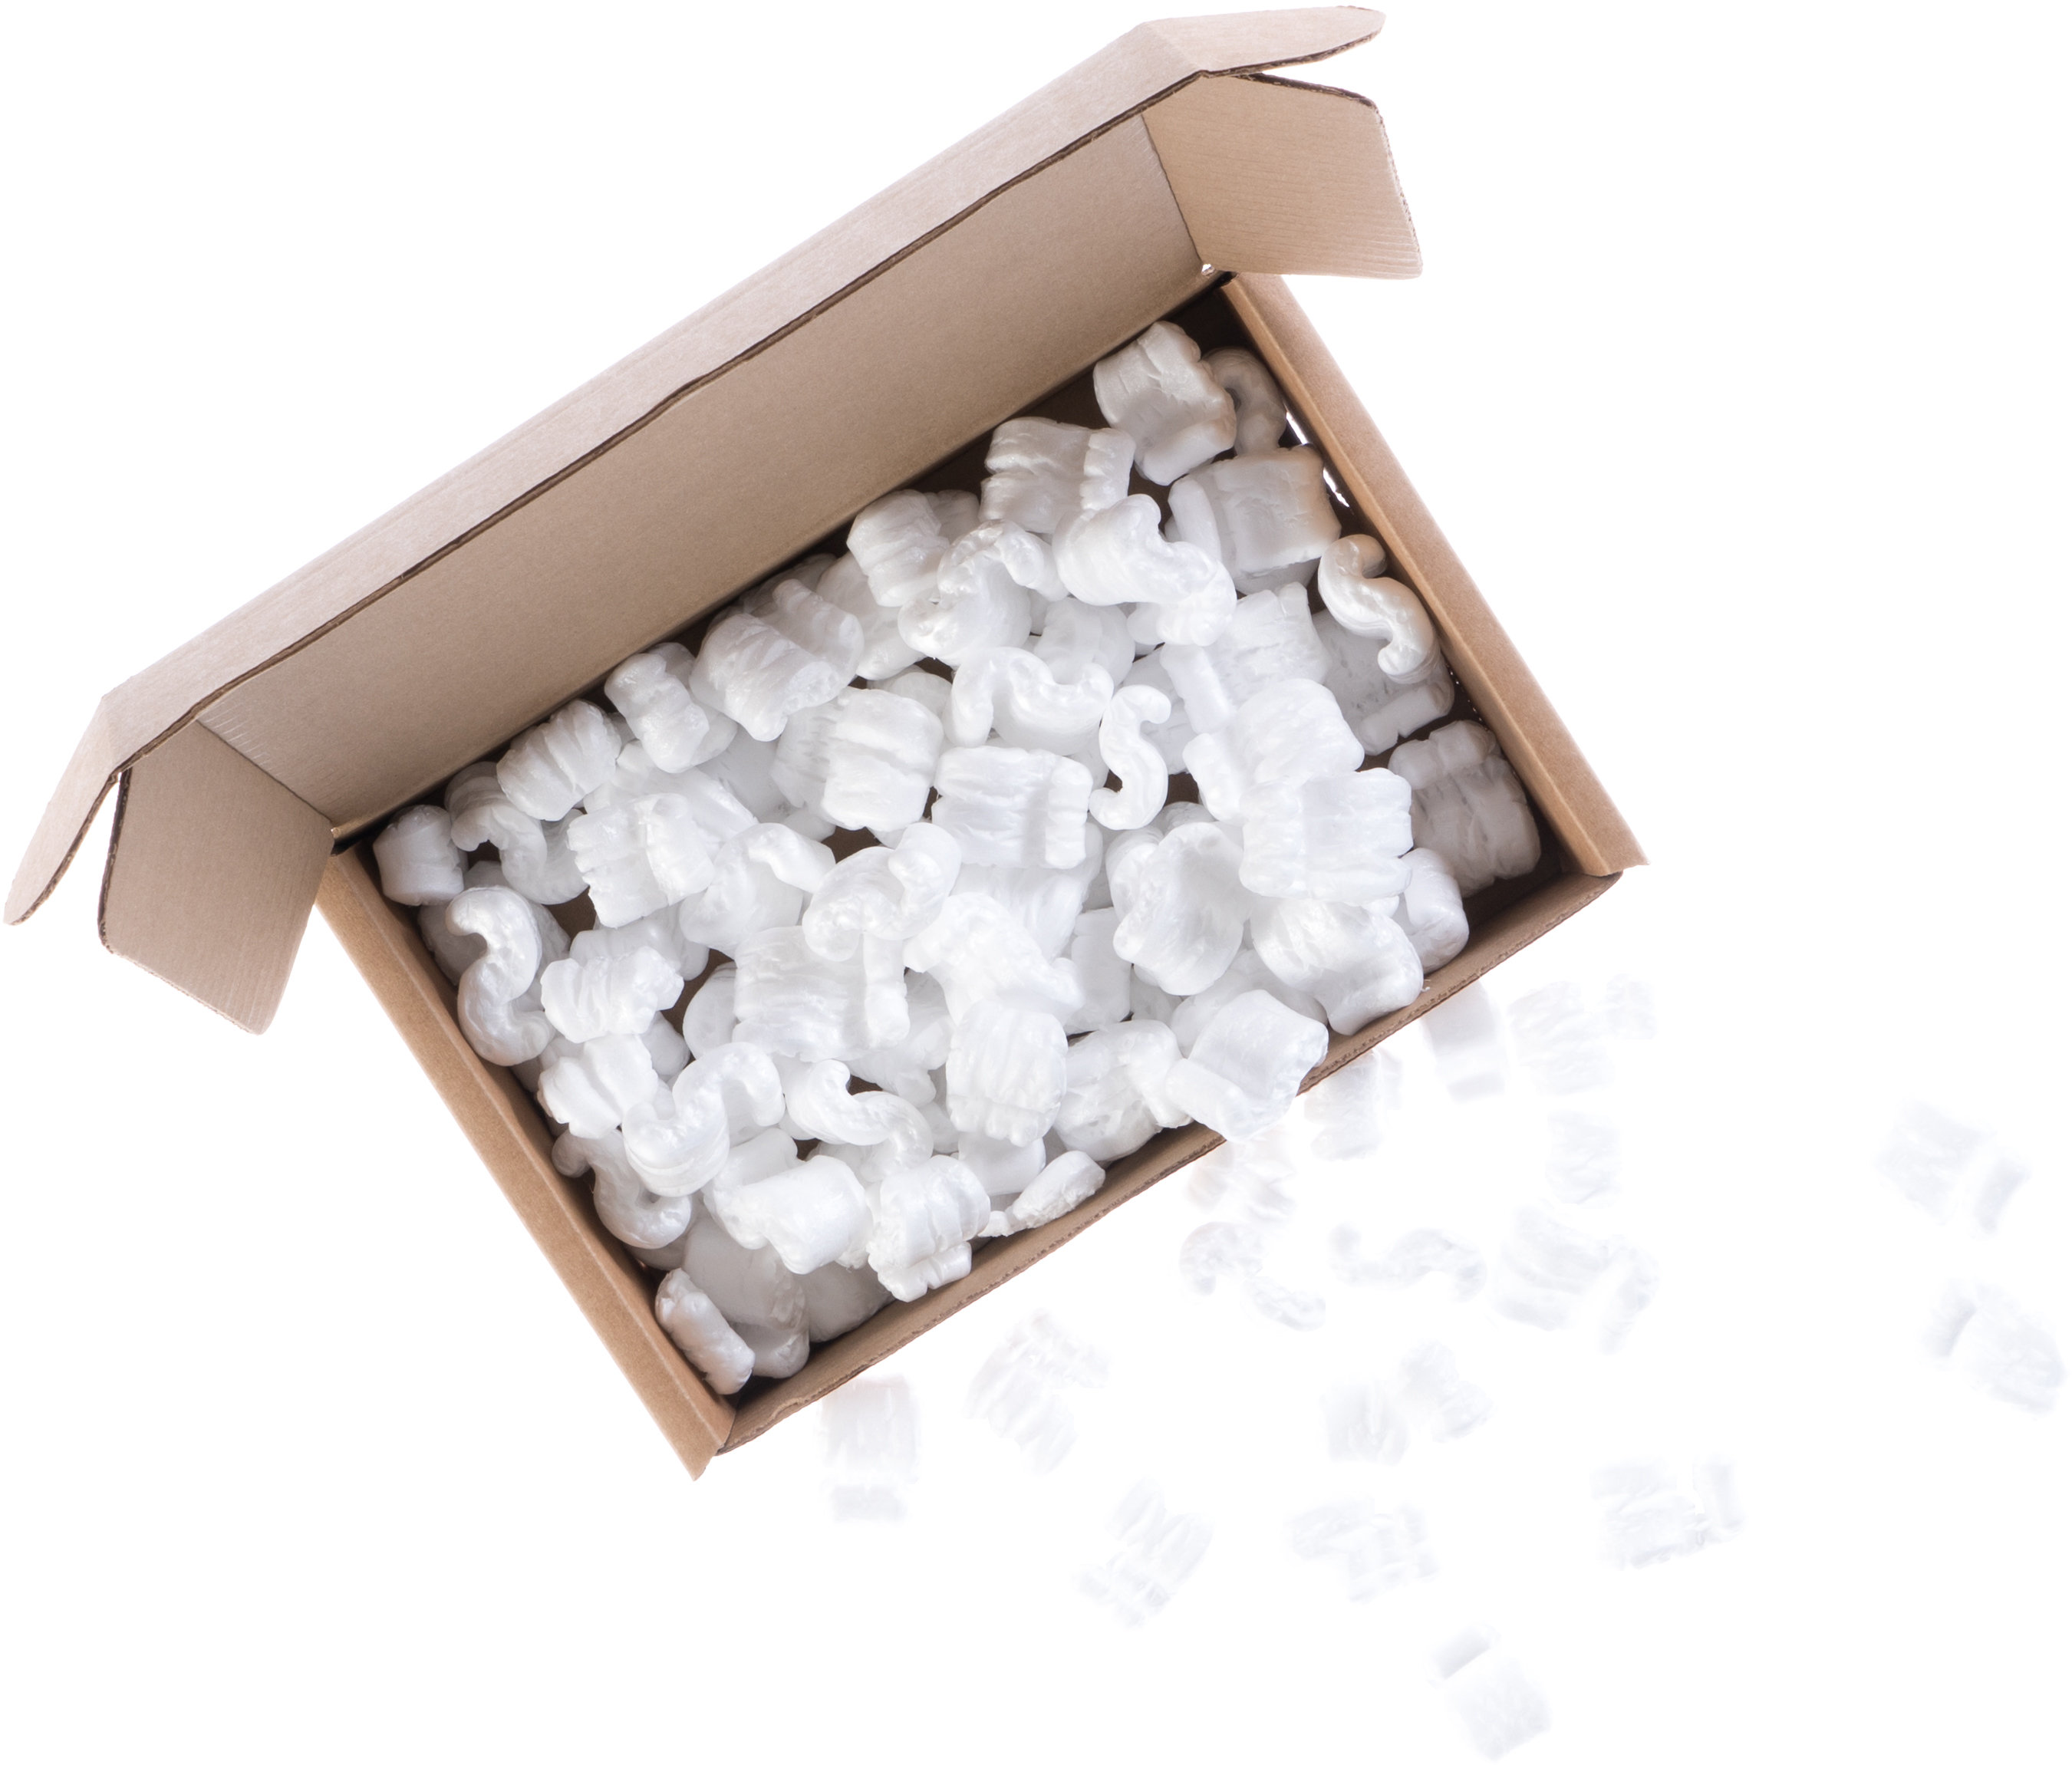 A photo of a kraft cardboard box with packing peanuts